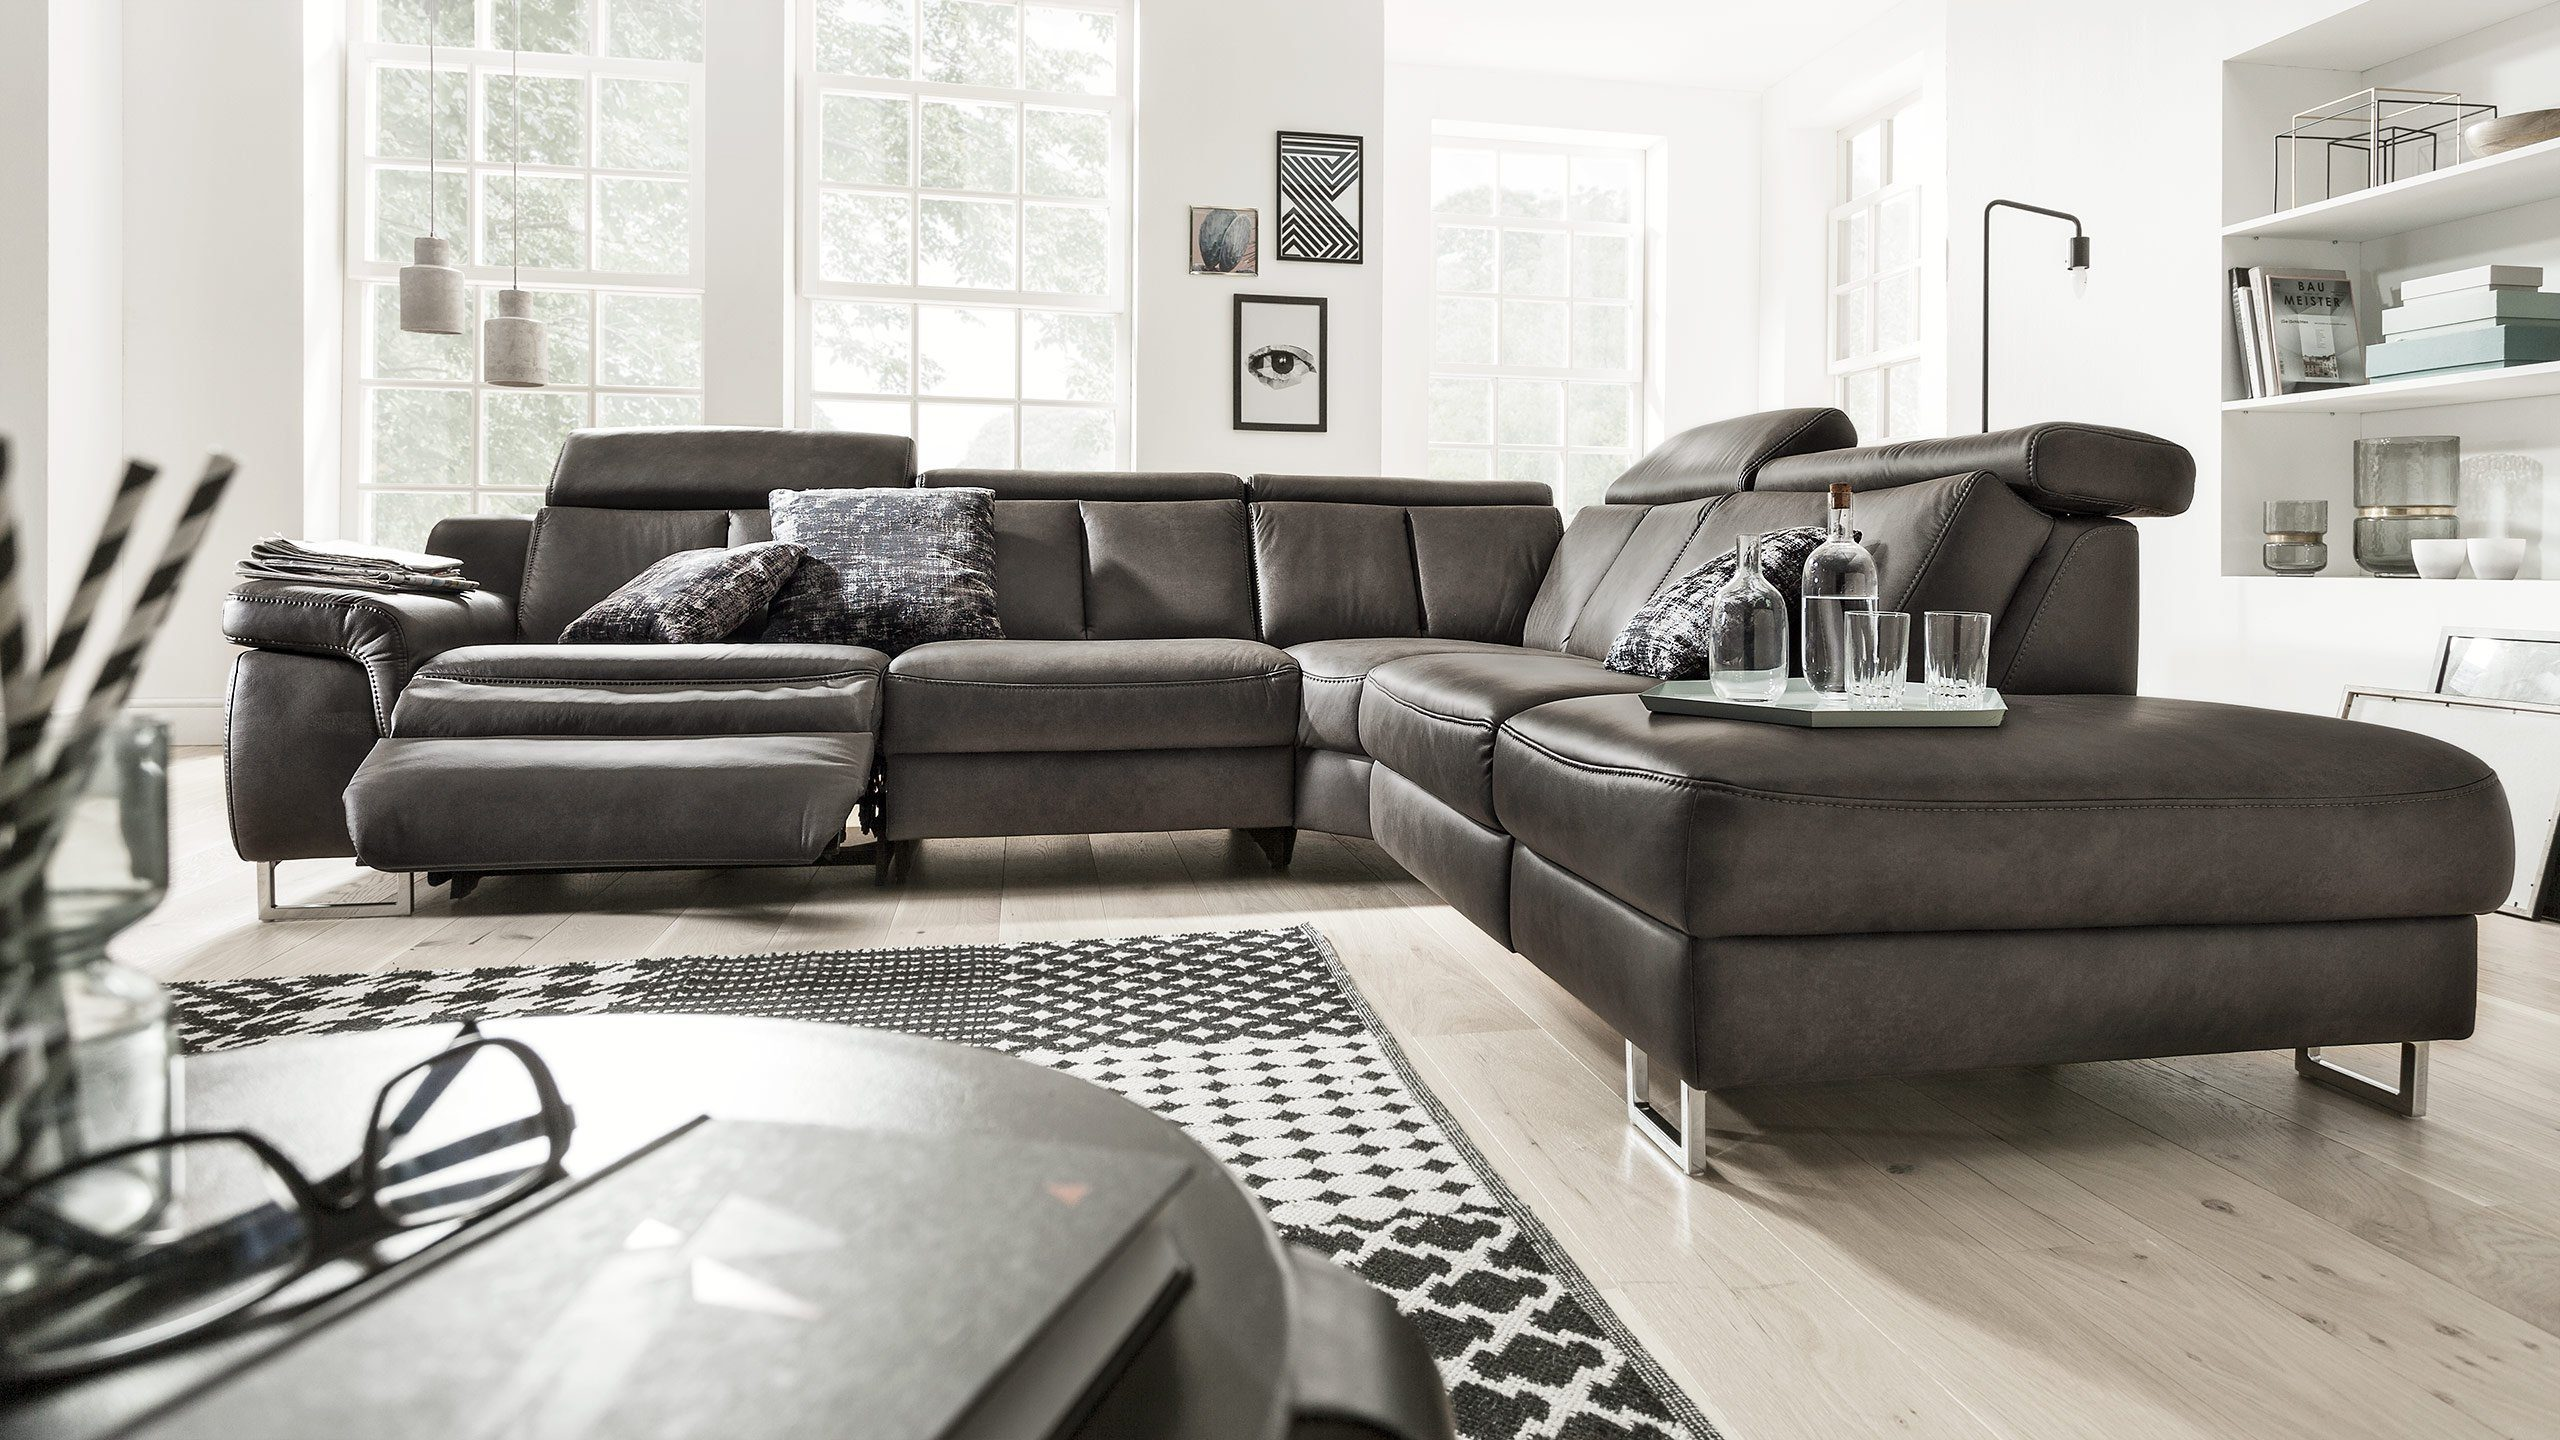 Interliving Ecksofa Ein Sofa Als Verwandlungskünstler Interliving